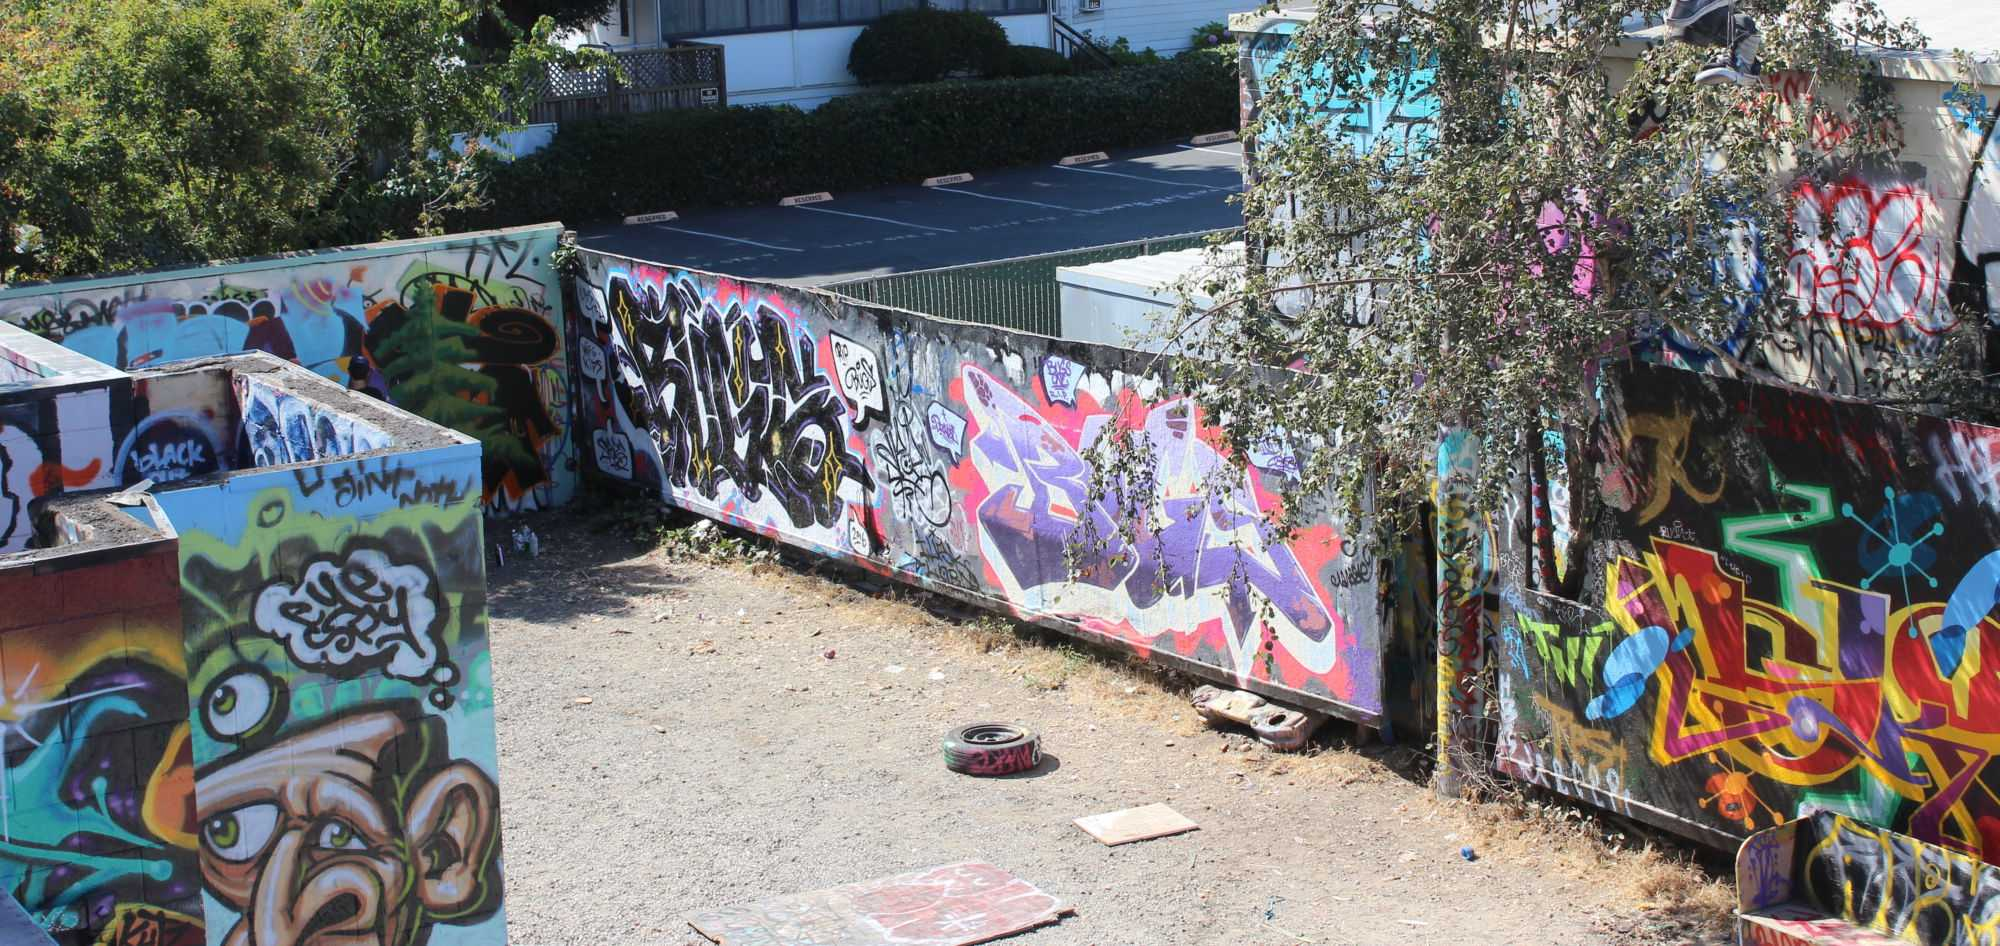 An elevated view of the legal graffiti wall where Addleman and Bettinger practice at the Phoenix Theater in Petaluma.